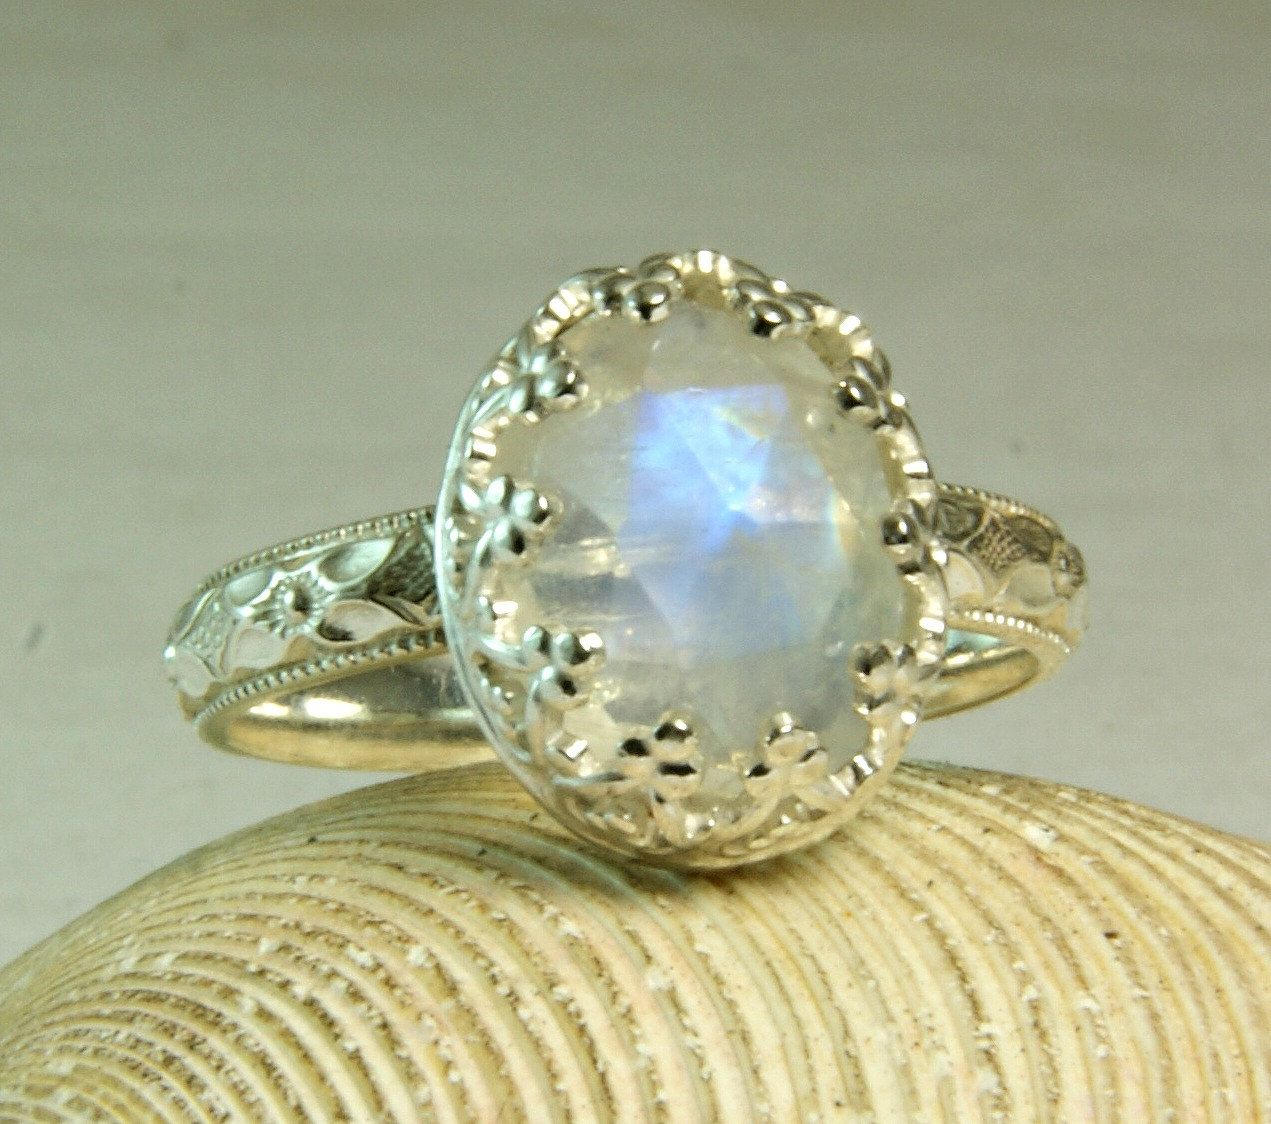 Rainbow Moonstone Ring, Sterling Silver, Faceted Stone, June Birthstone, Cocktail Ring, made to order by TazziesCustomJewelry on Etsy https://www.etsy.com/listing/197654634/rainbow-moonstone-ring-sterling-silver